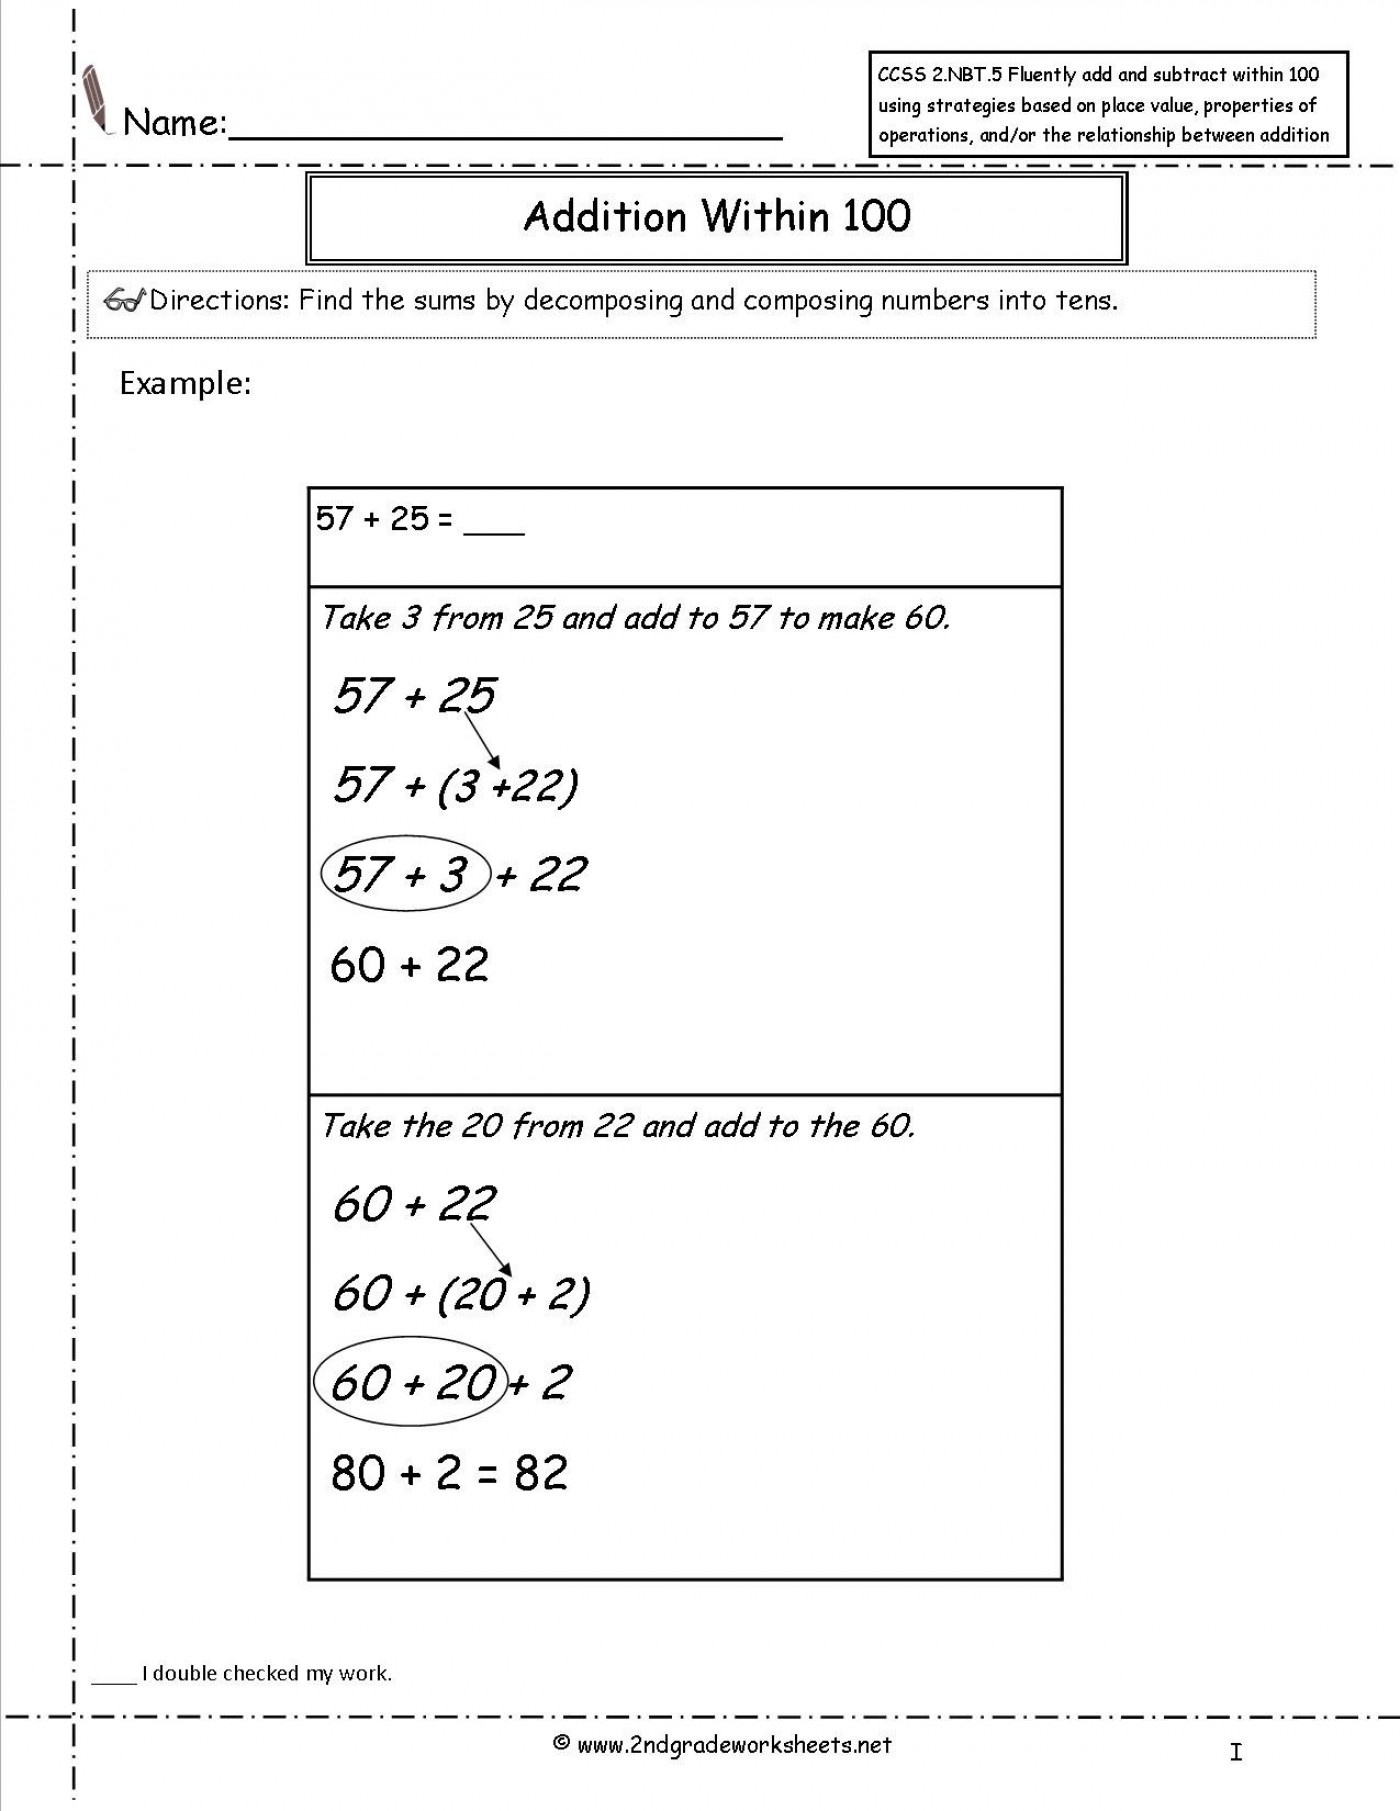 1St Grade Common Core Math Worksheets - Math Worksheet For Kids - Free Printable Common Core Math Worksheets For Third Grade